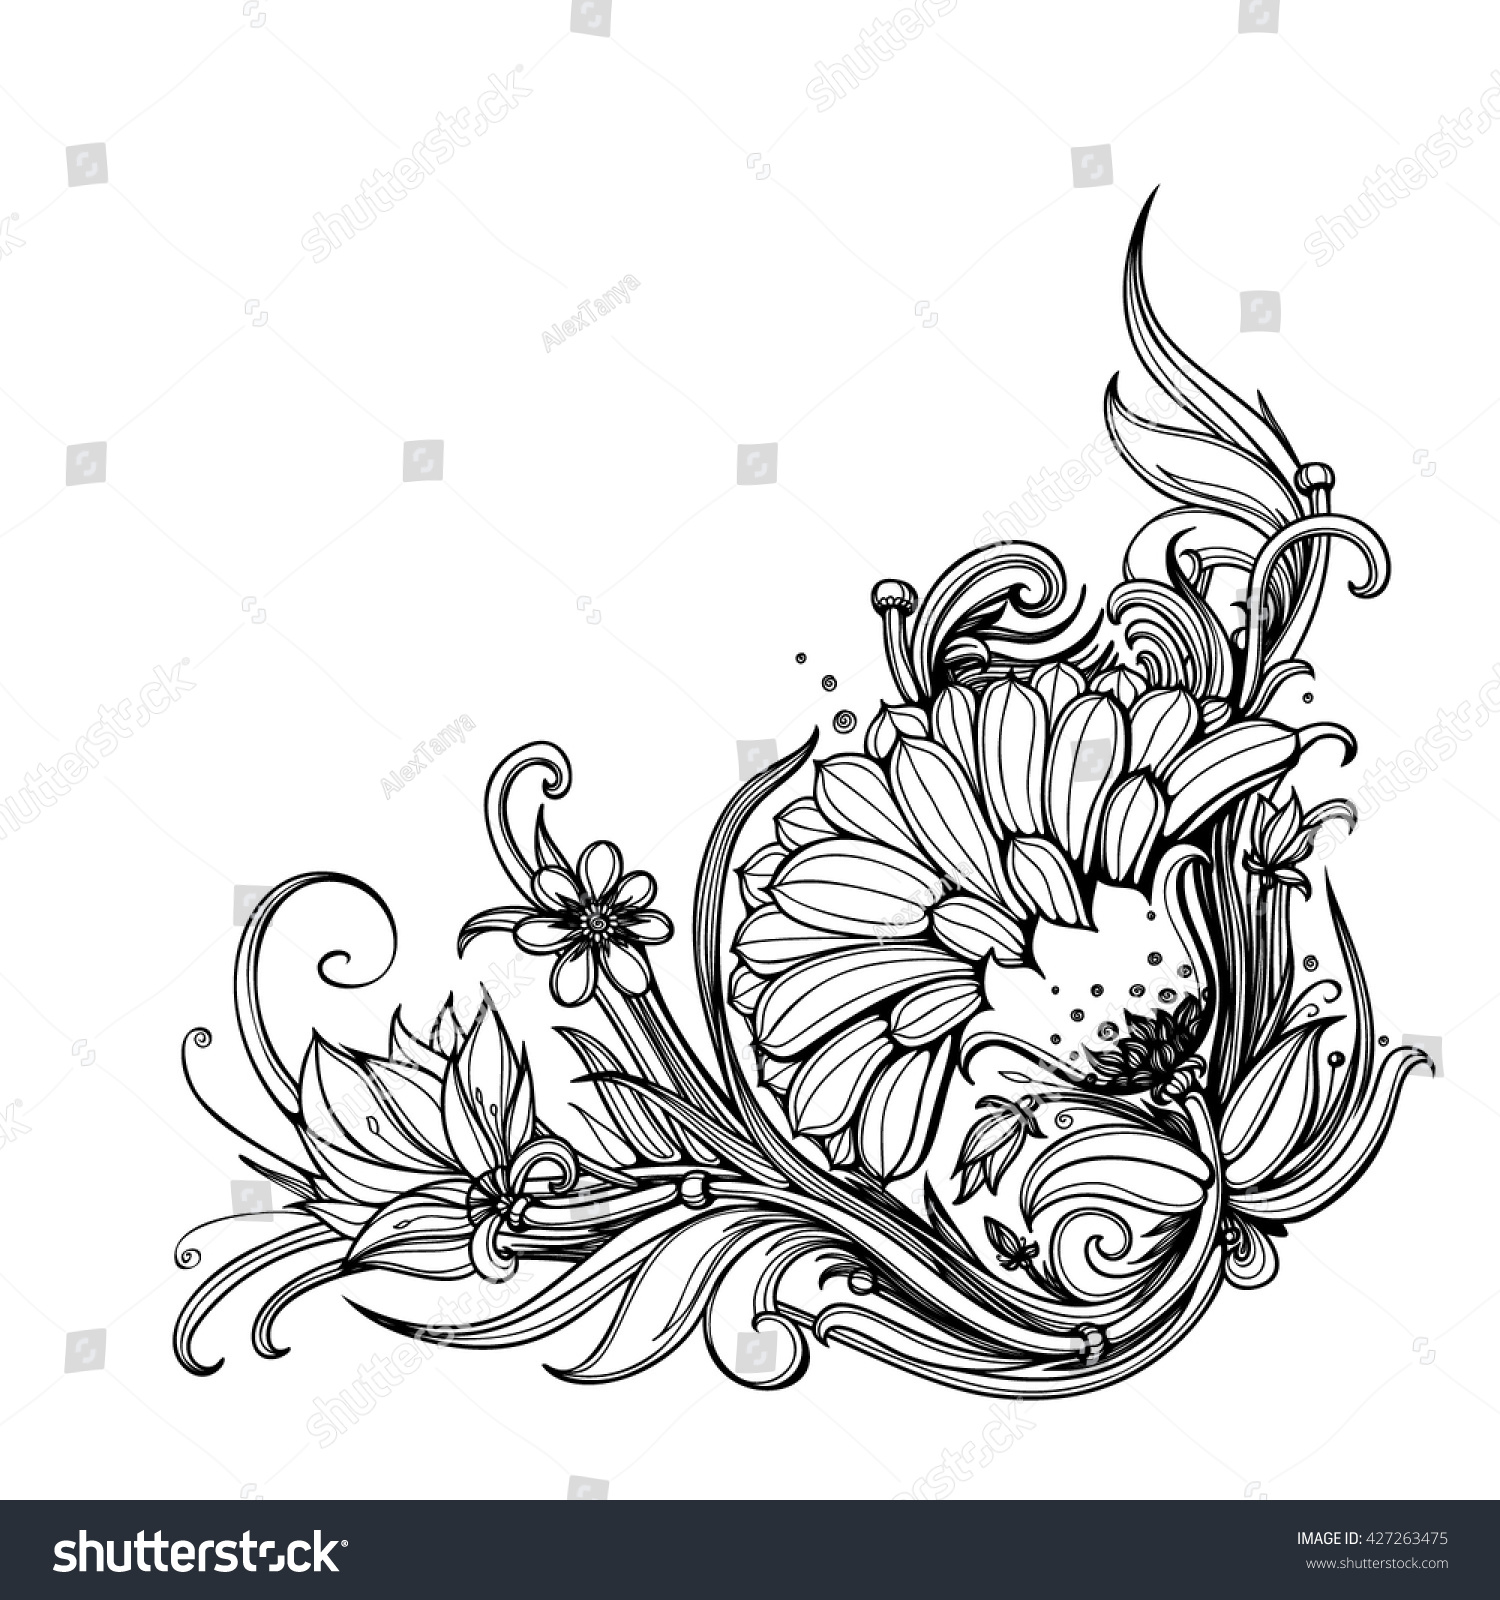 Decorative Black Flower Border Stock Image: Vector Black White Floral Corner Border Stock Vector